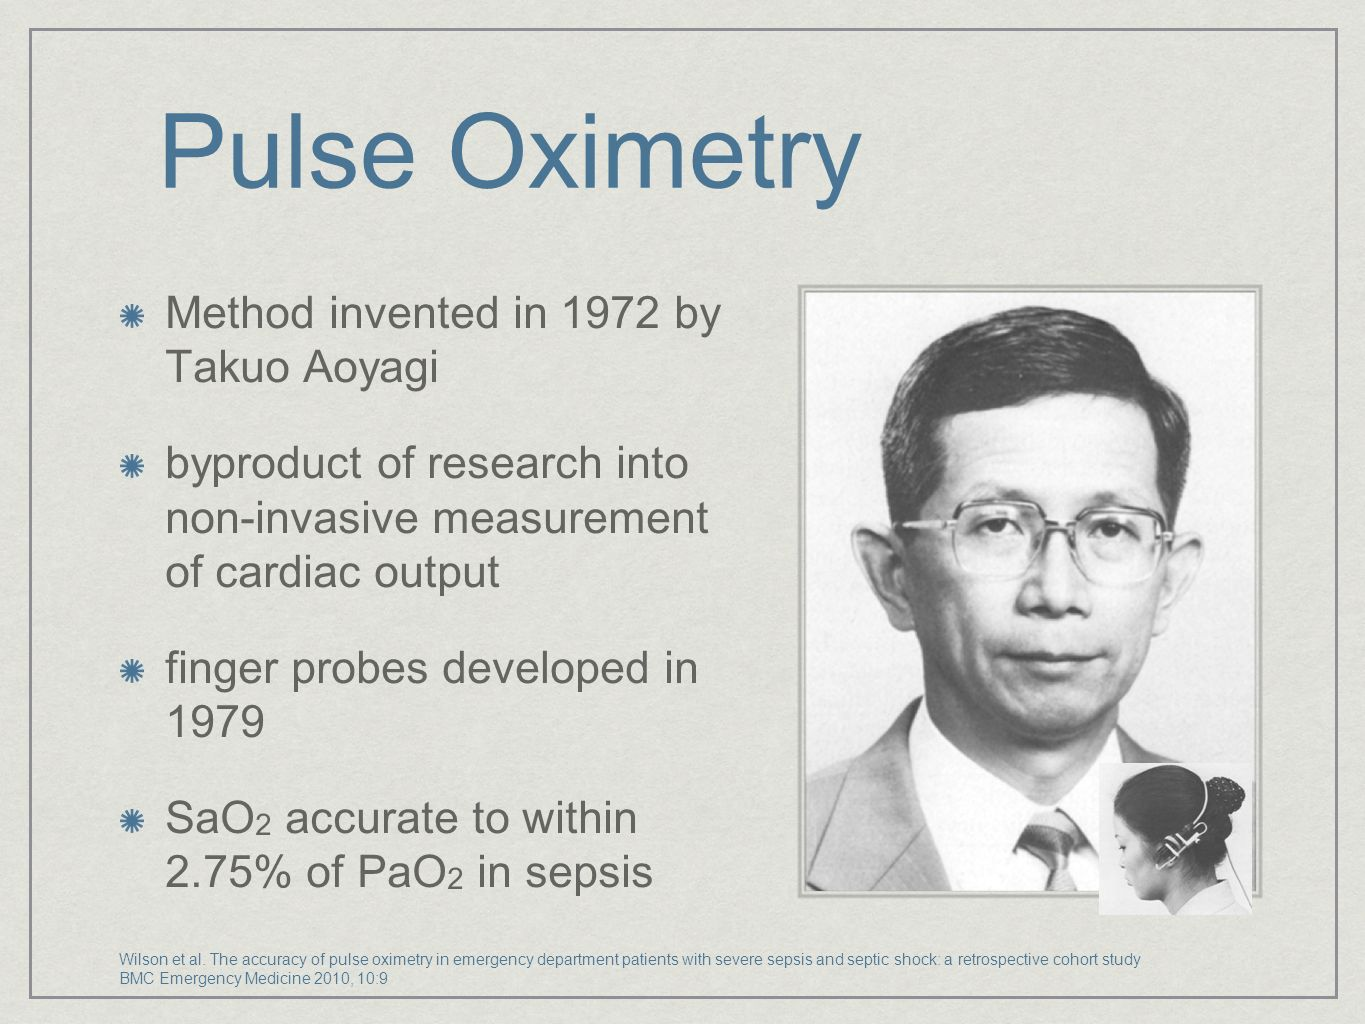 Pulse Oximetry Method invented in 1972 by Takuo Aoyagi